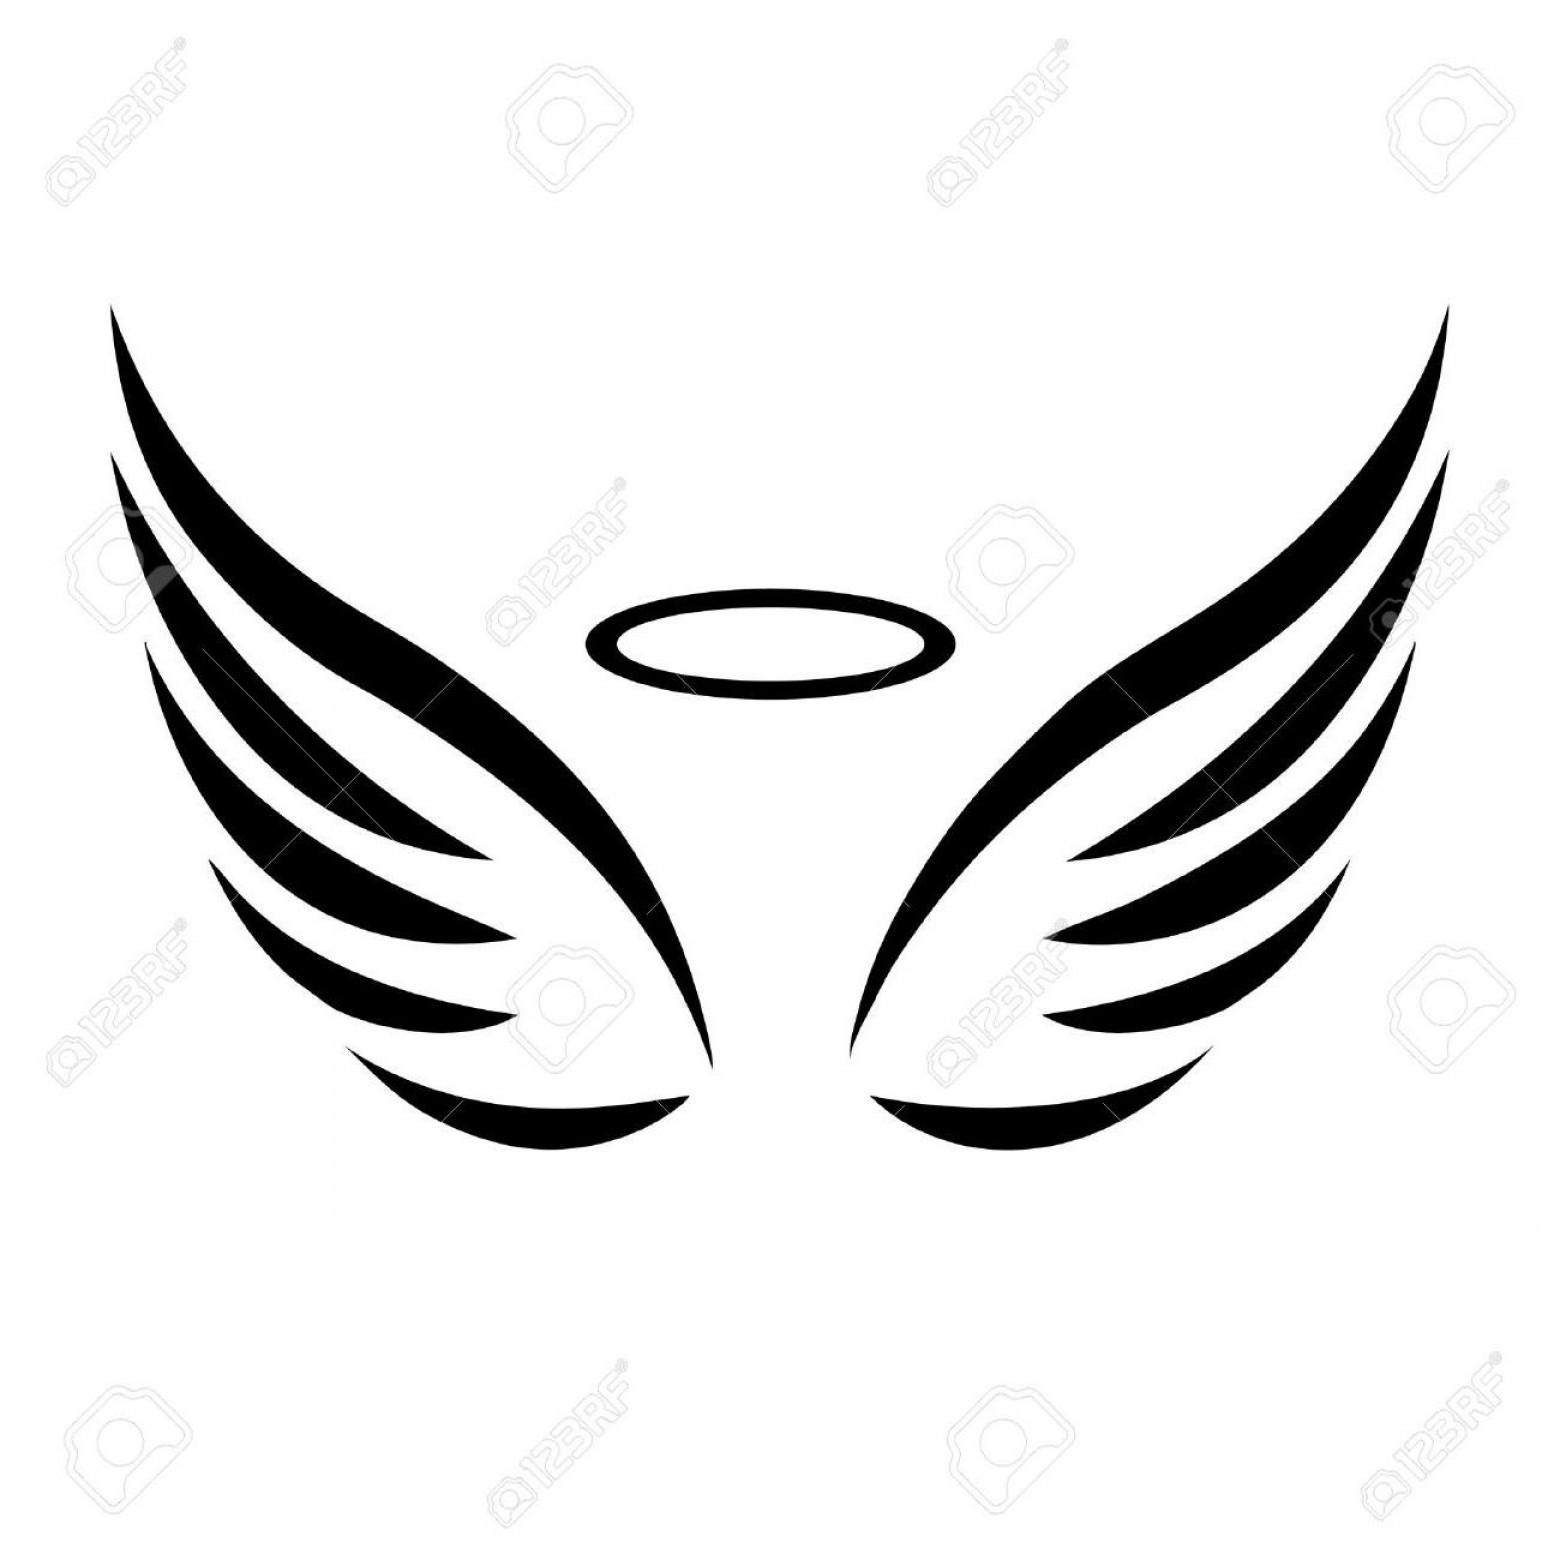 Baby angel wings clipart black and white image royalty free stock Boy Angel Wings Clipart Black And White | SOIDERGI image royalty free stock